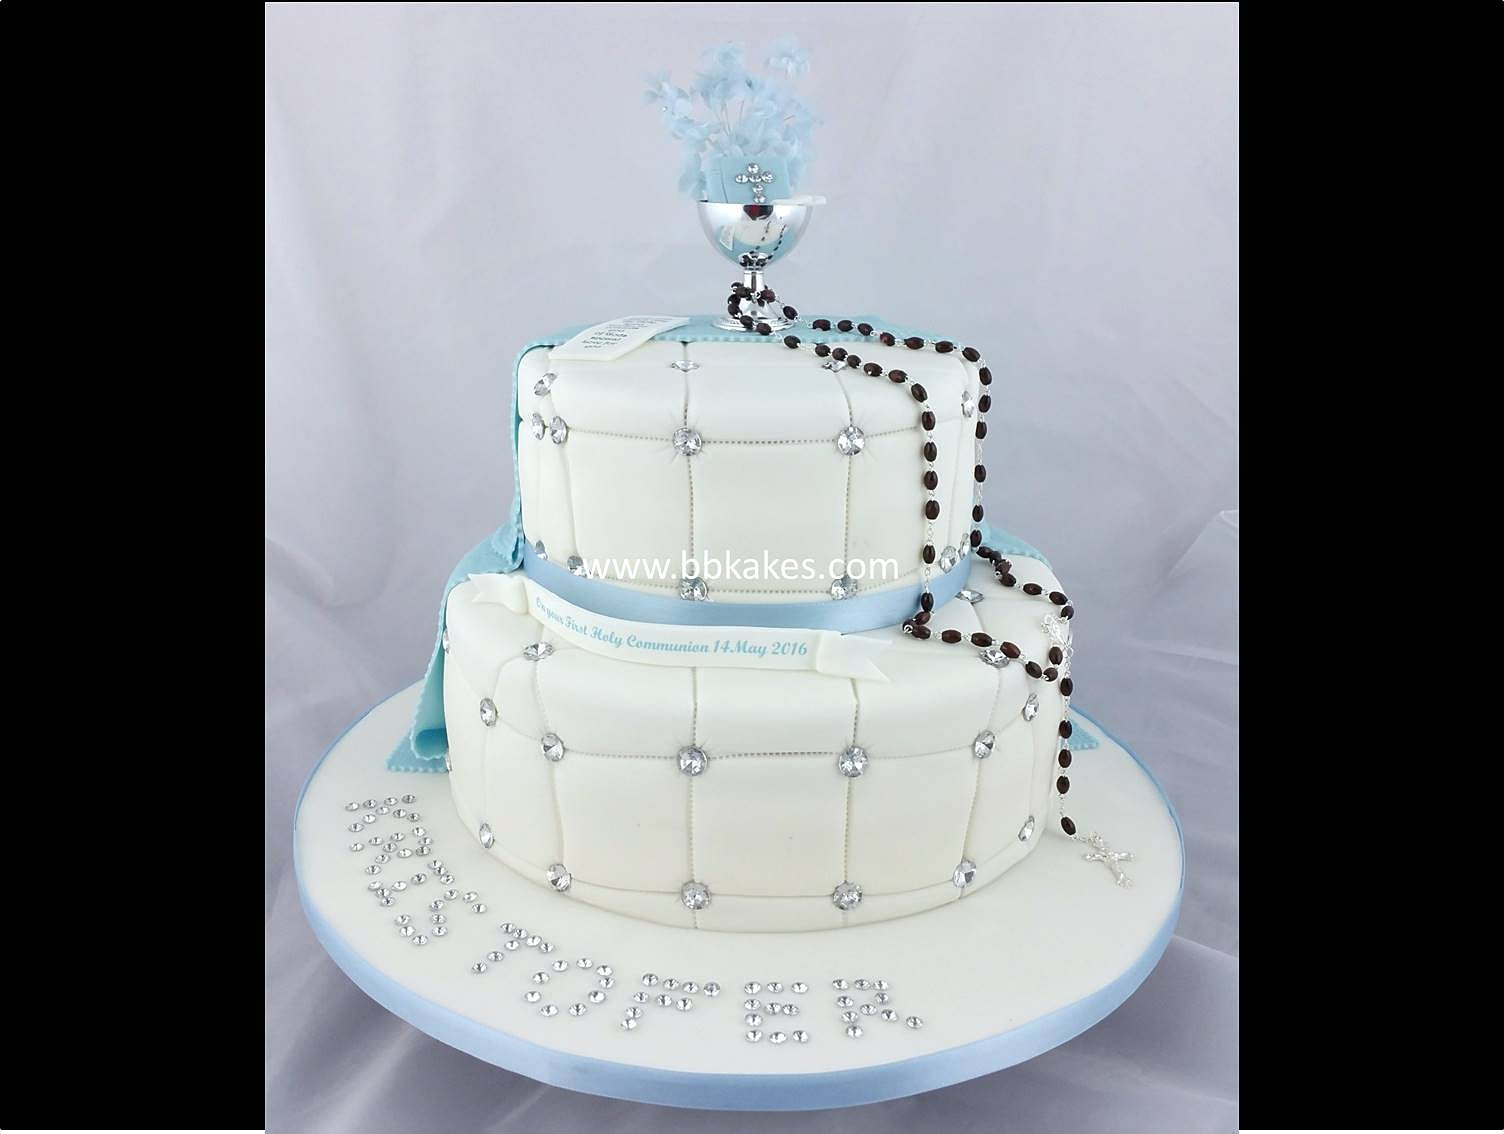 Two Tier Communion Cakes